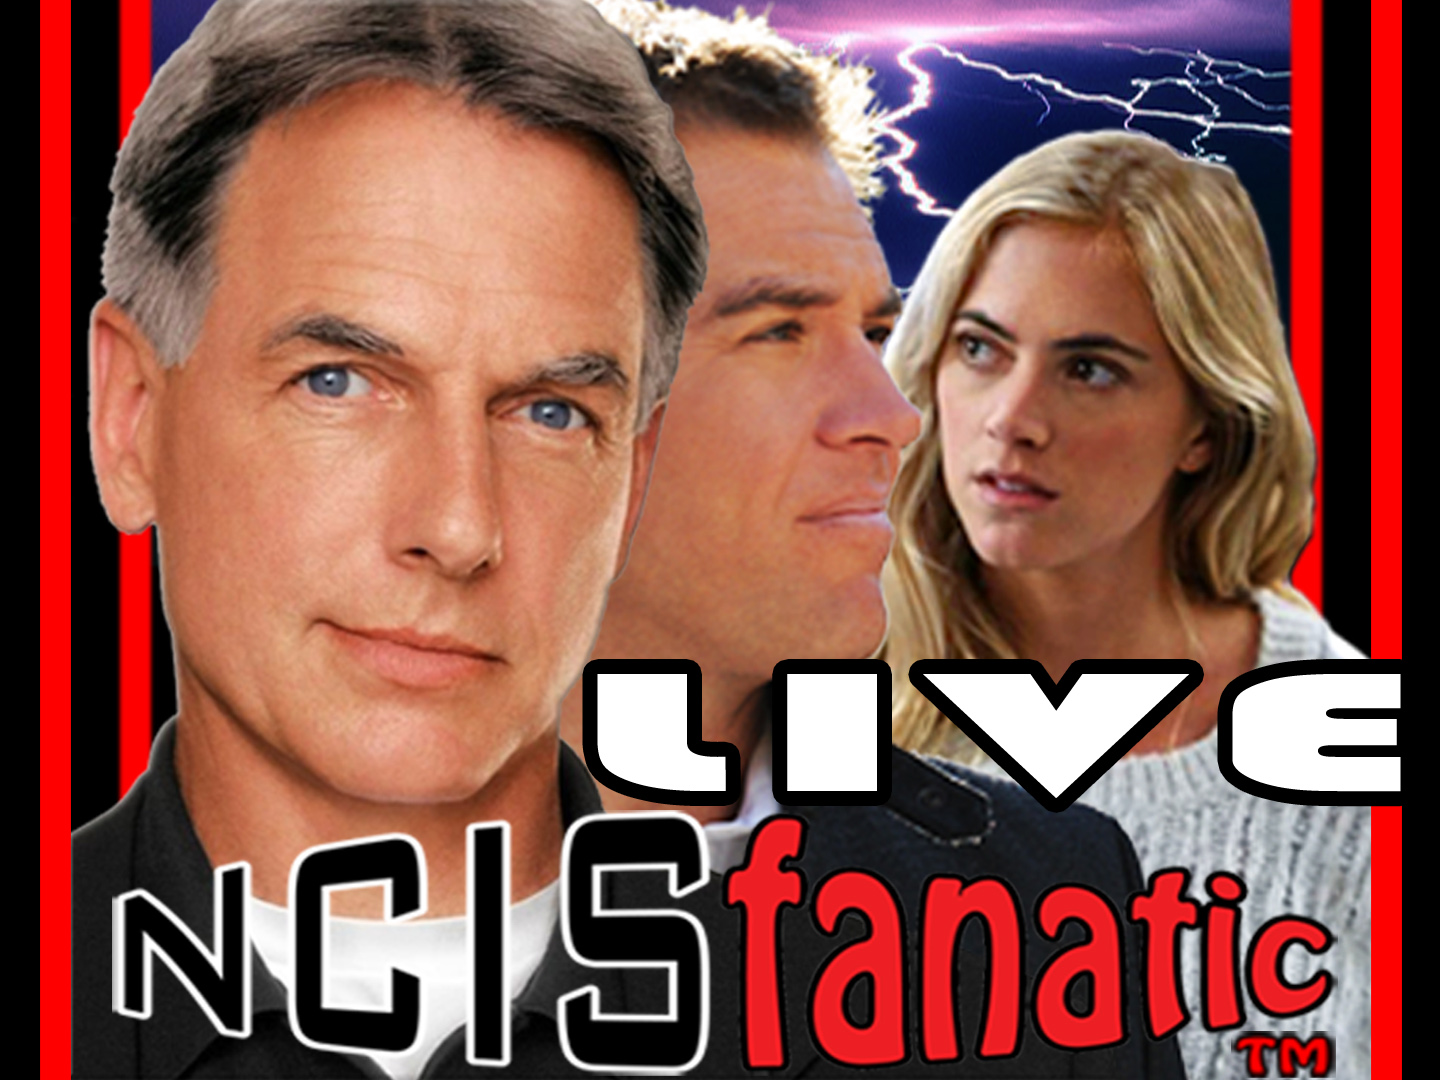 Fans Discuss NCIS & NCIS:Los Angeles — Hosted by NCISfanatic [John] and InherentlyRandom [Ashley] from our NCIS Random Reviews — Submit Text or Video questions or join us LIVE using your Webcam. Atmosphere is laid-back California casual. — NCISfanatic LIVE - Tuesday 7p/ET 4p/PT